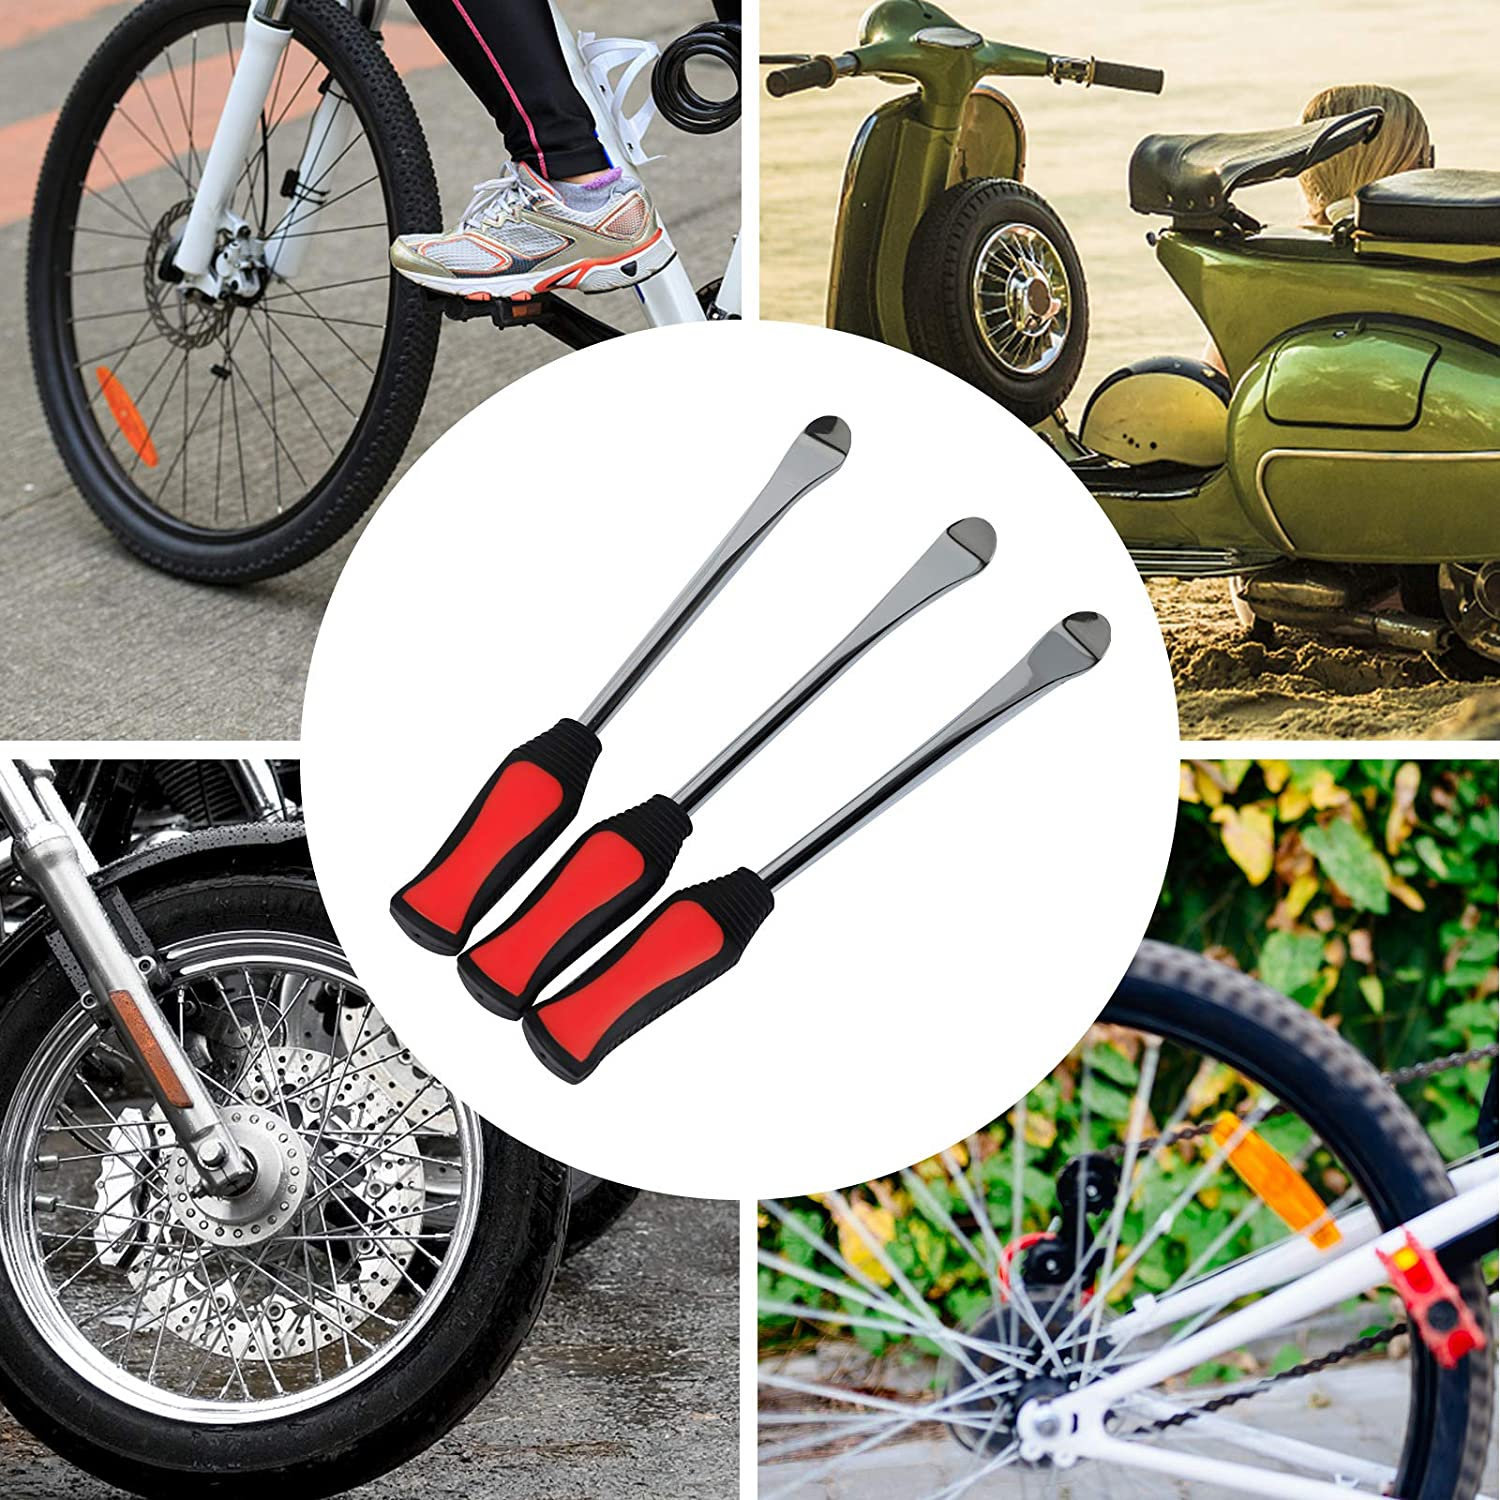 CHENGDE Tire Lever Tool Kit Tyre Levers Motorcycle Tyre Spoons 3 Tire Lever Tool Spoon with 2pcs Wheel Rim Protectors Tool Kit for Motorcycle Bike Car Tire Changing Removing